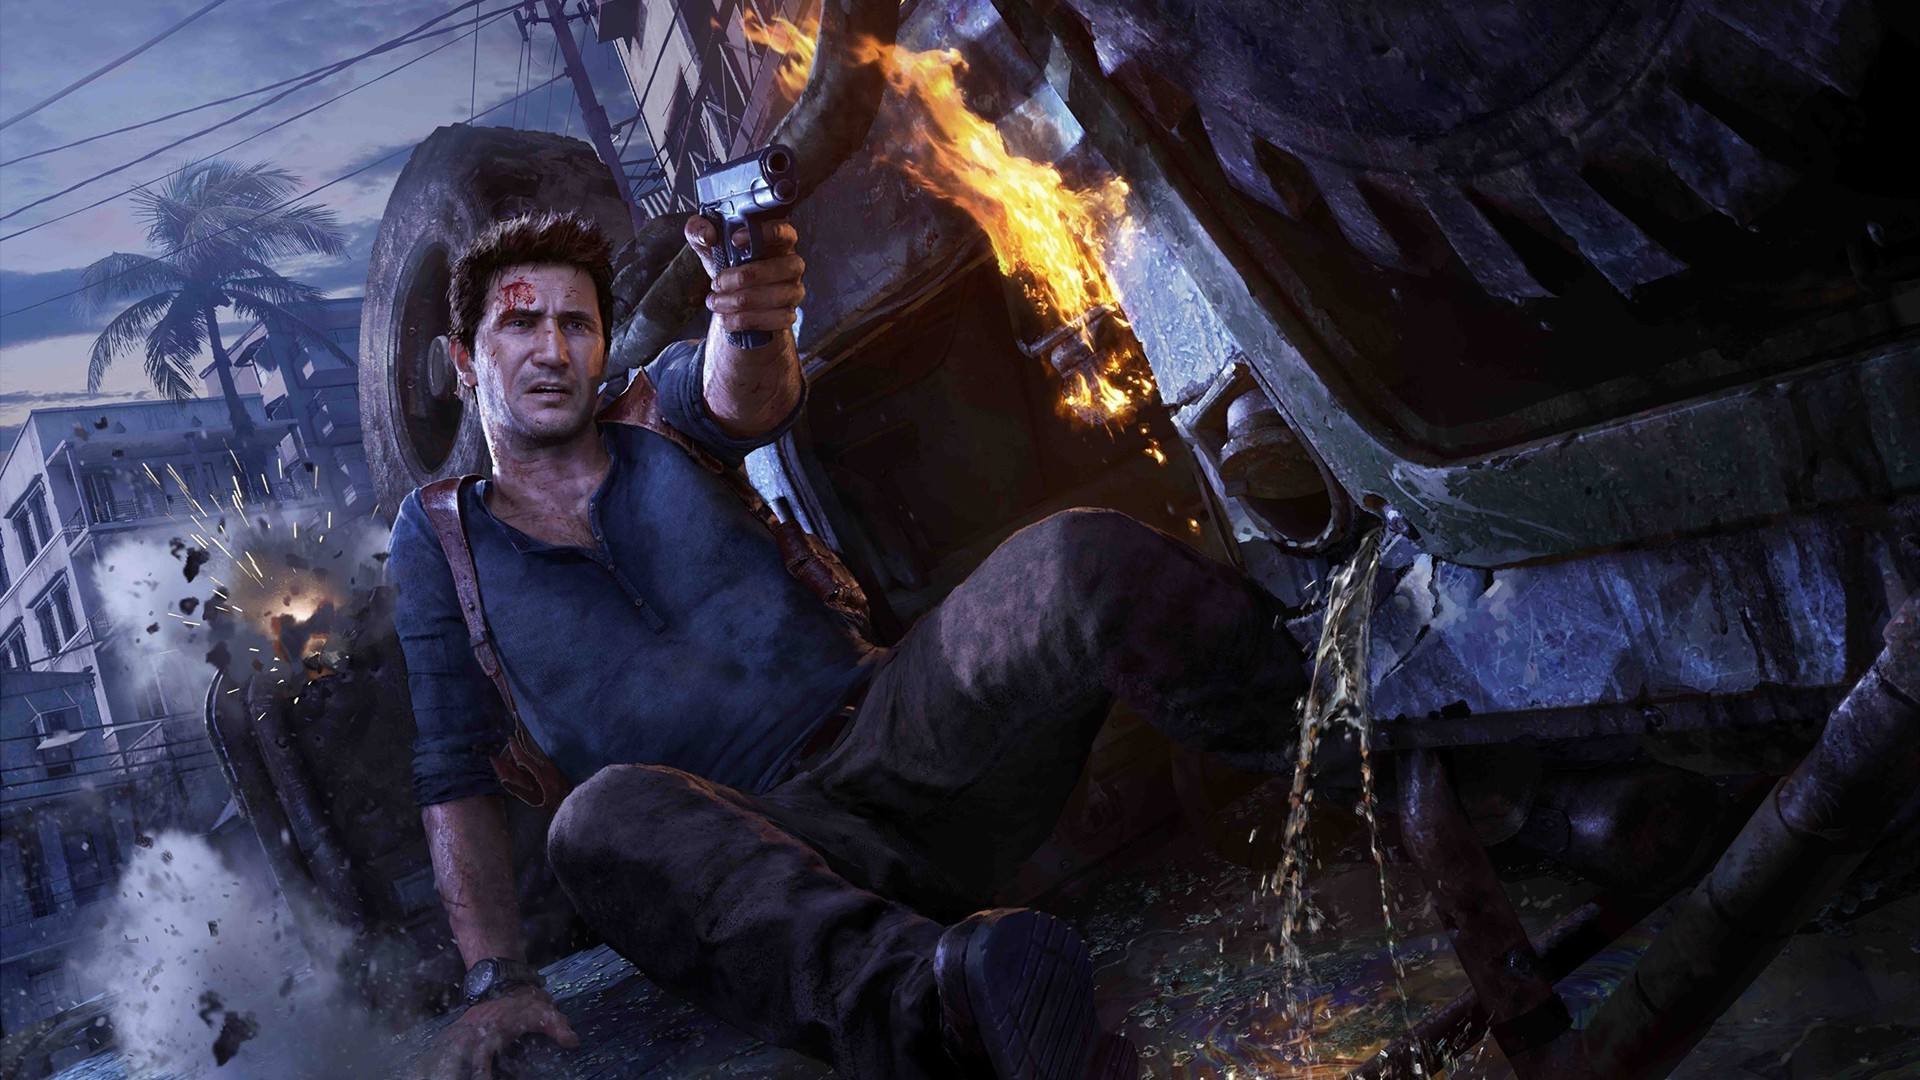 Uncharted Lost Legacy Wallpaper: Uncharted Wallpaper (80+ Images